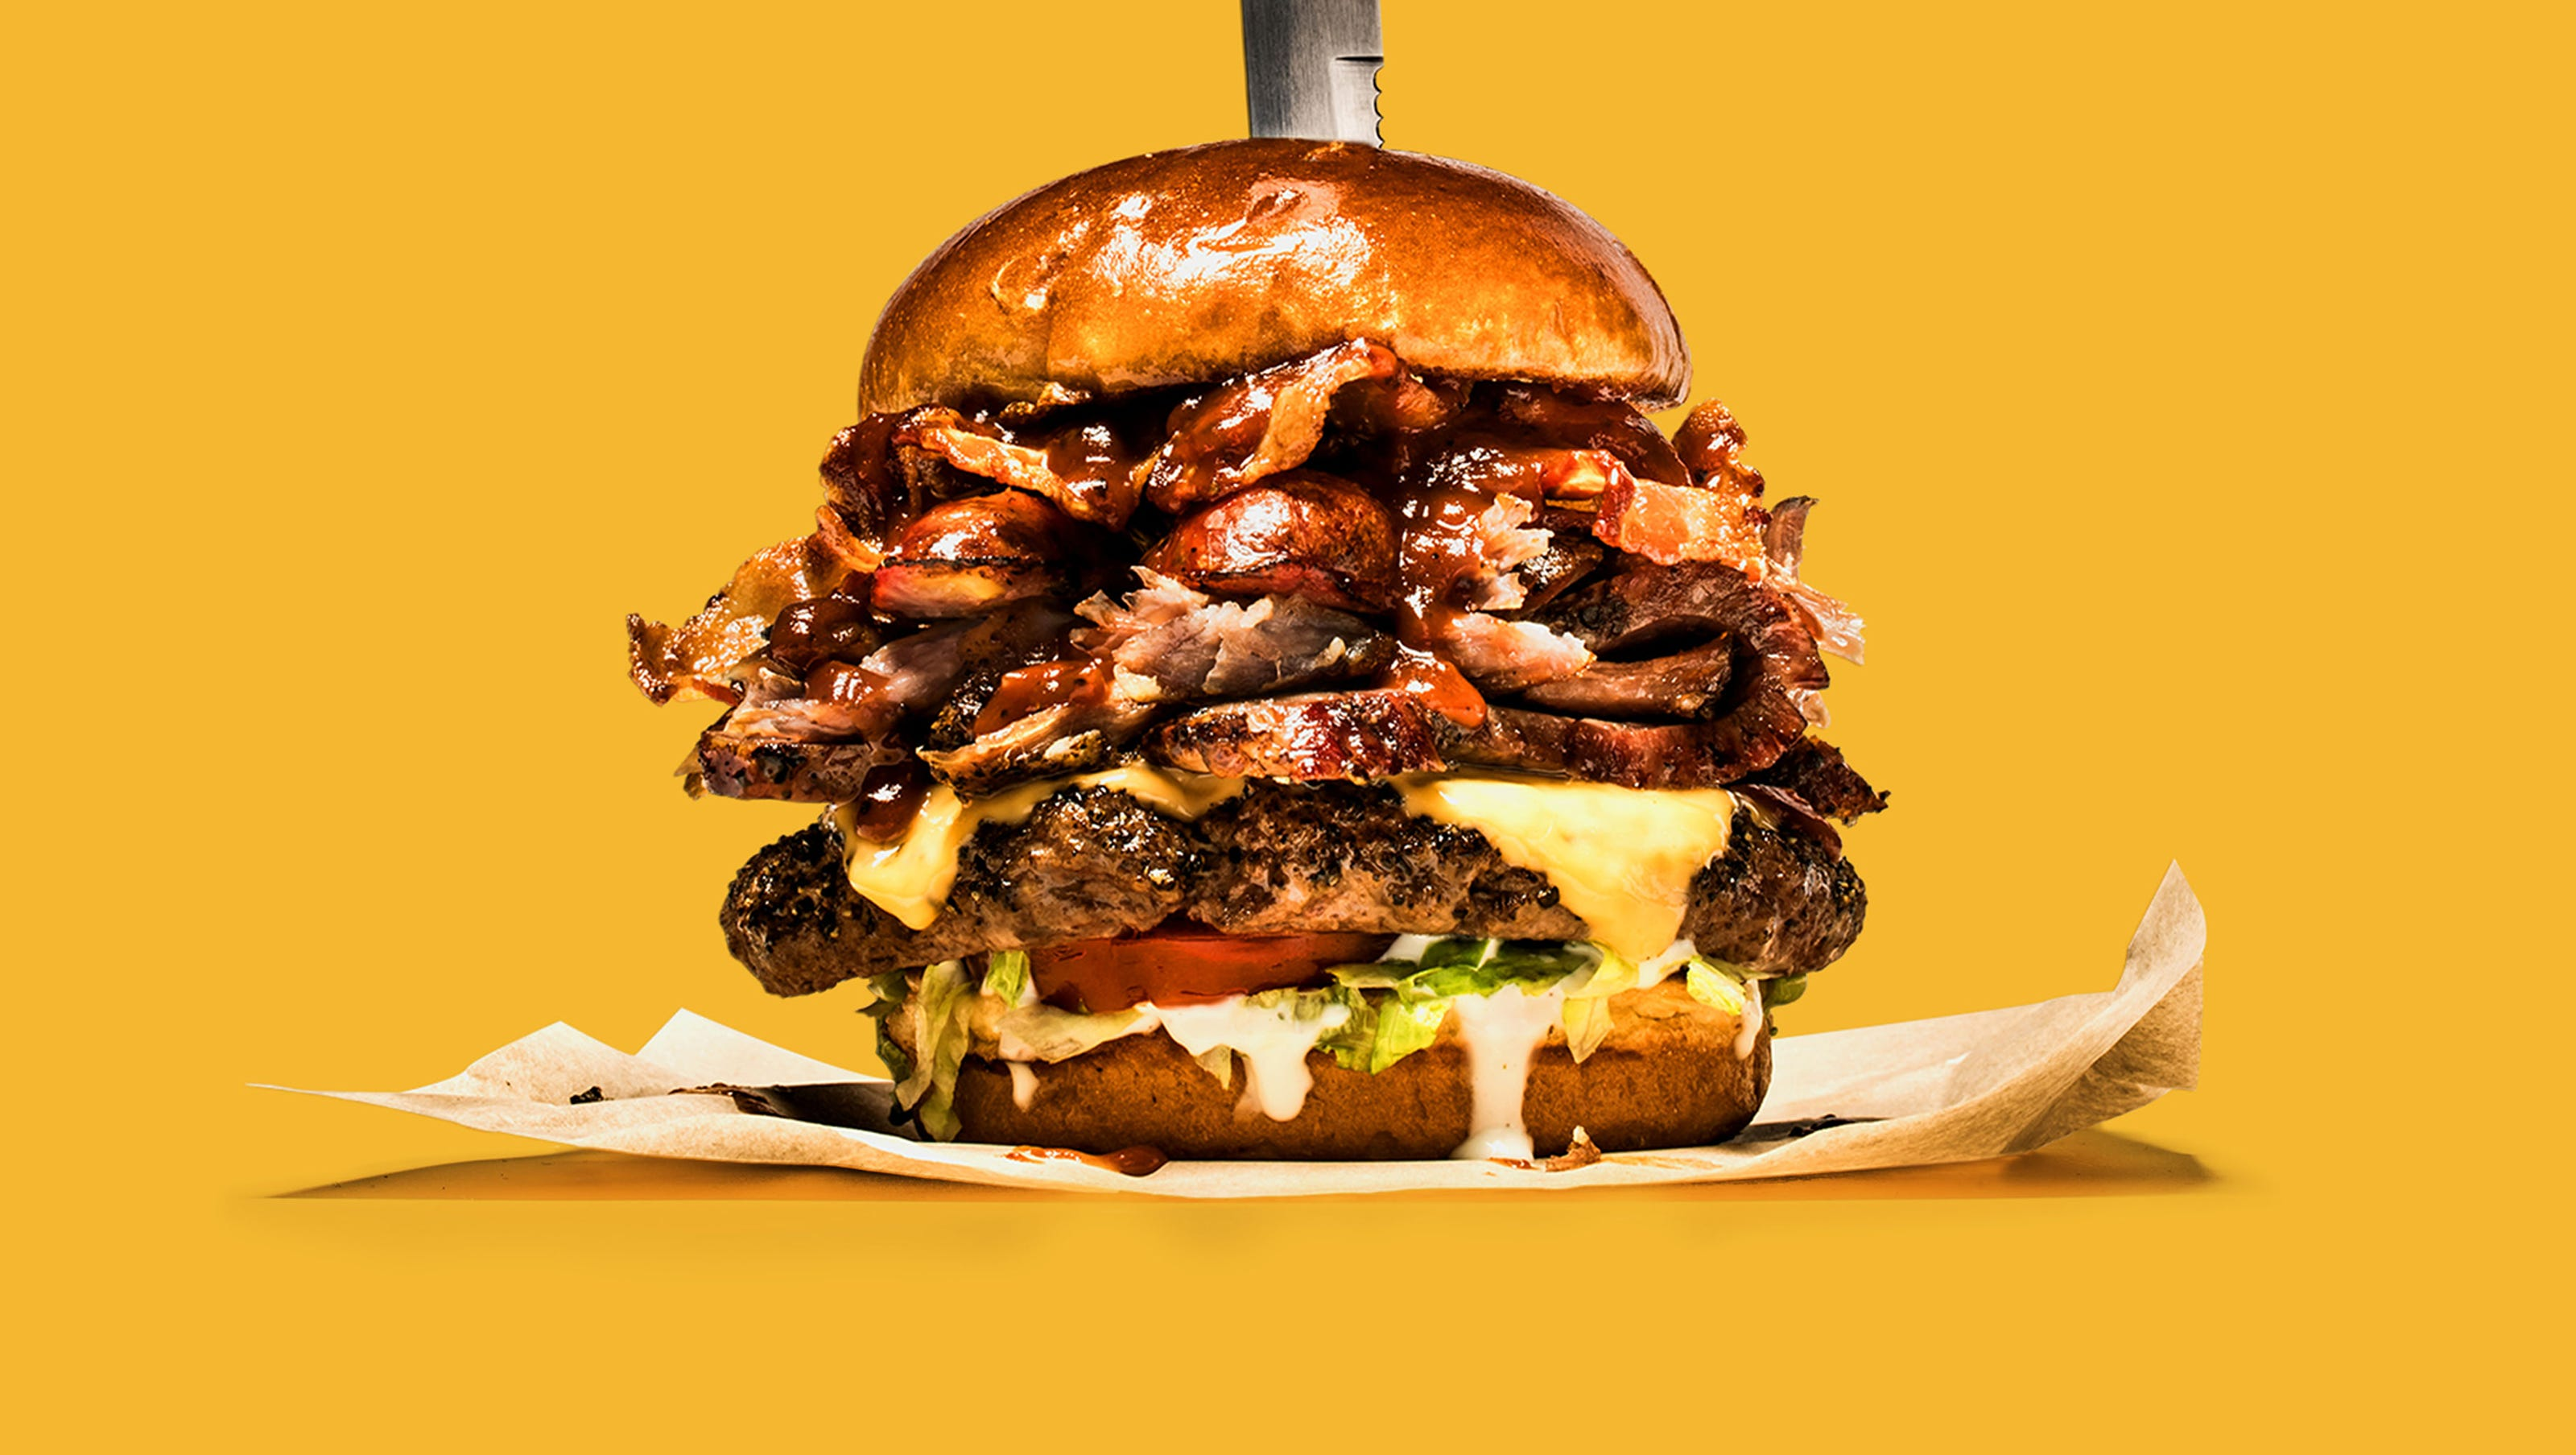 chili's 1,650 calories, half foot tall boss burger is a massive meat